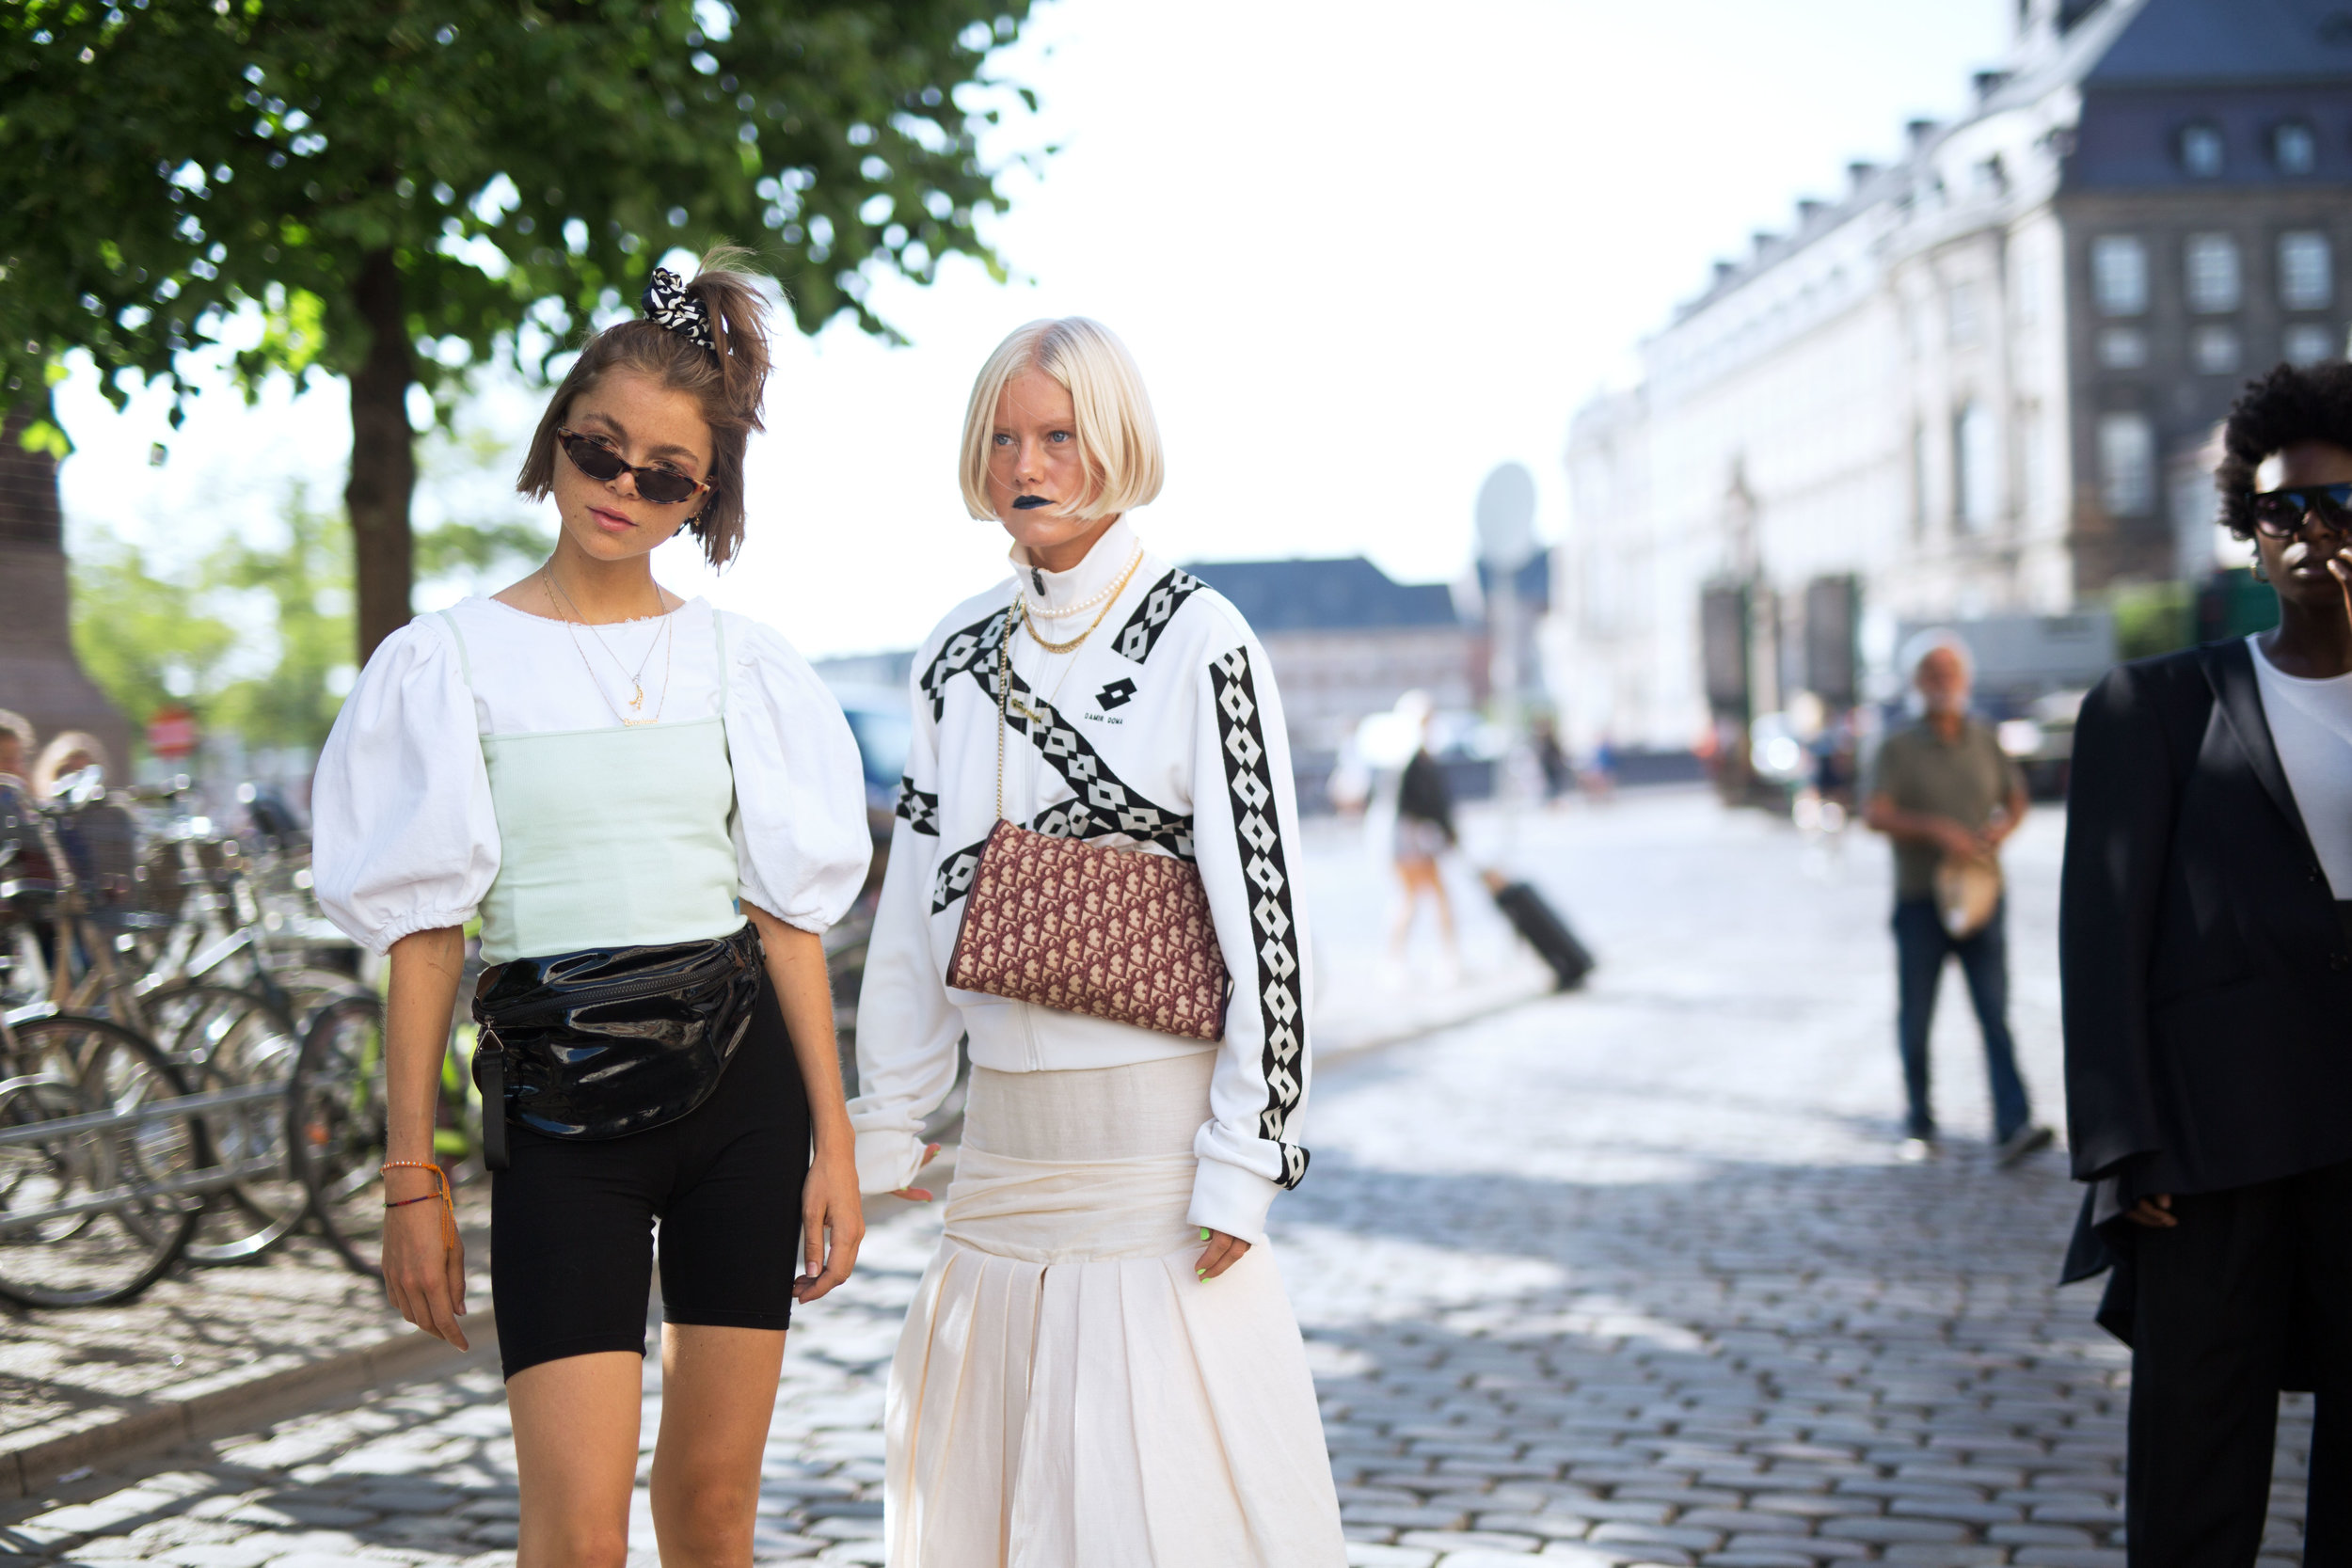 TheStreetland_Copenhagen_Fashion_Week_SS19_36.jpg